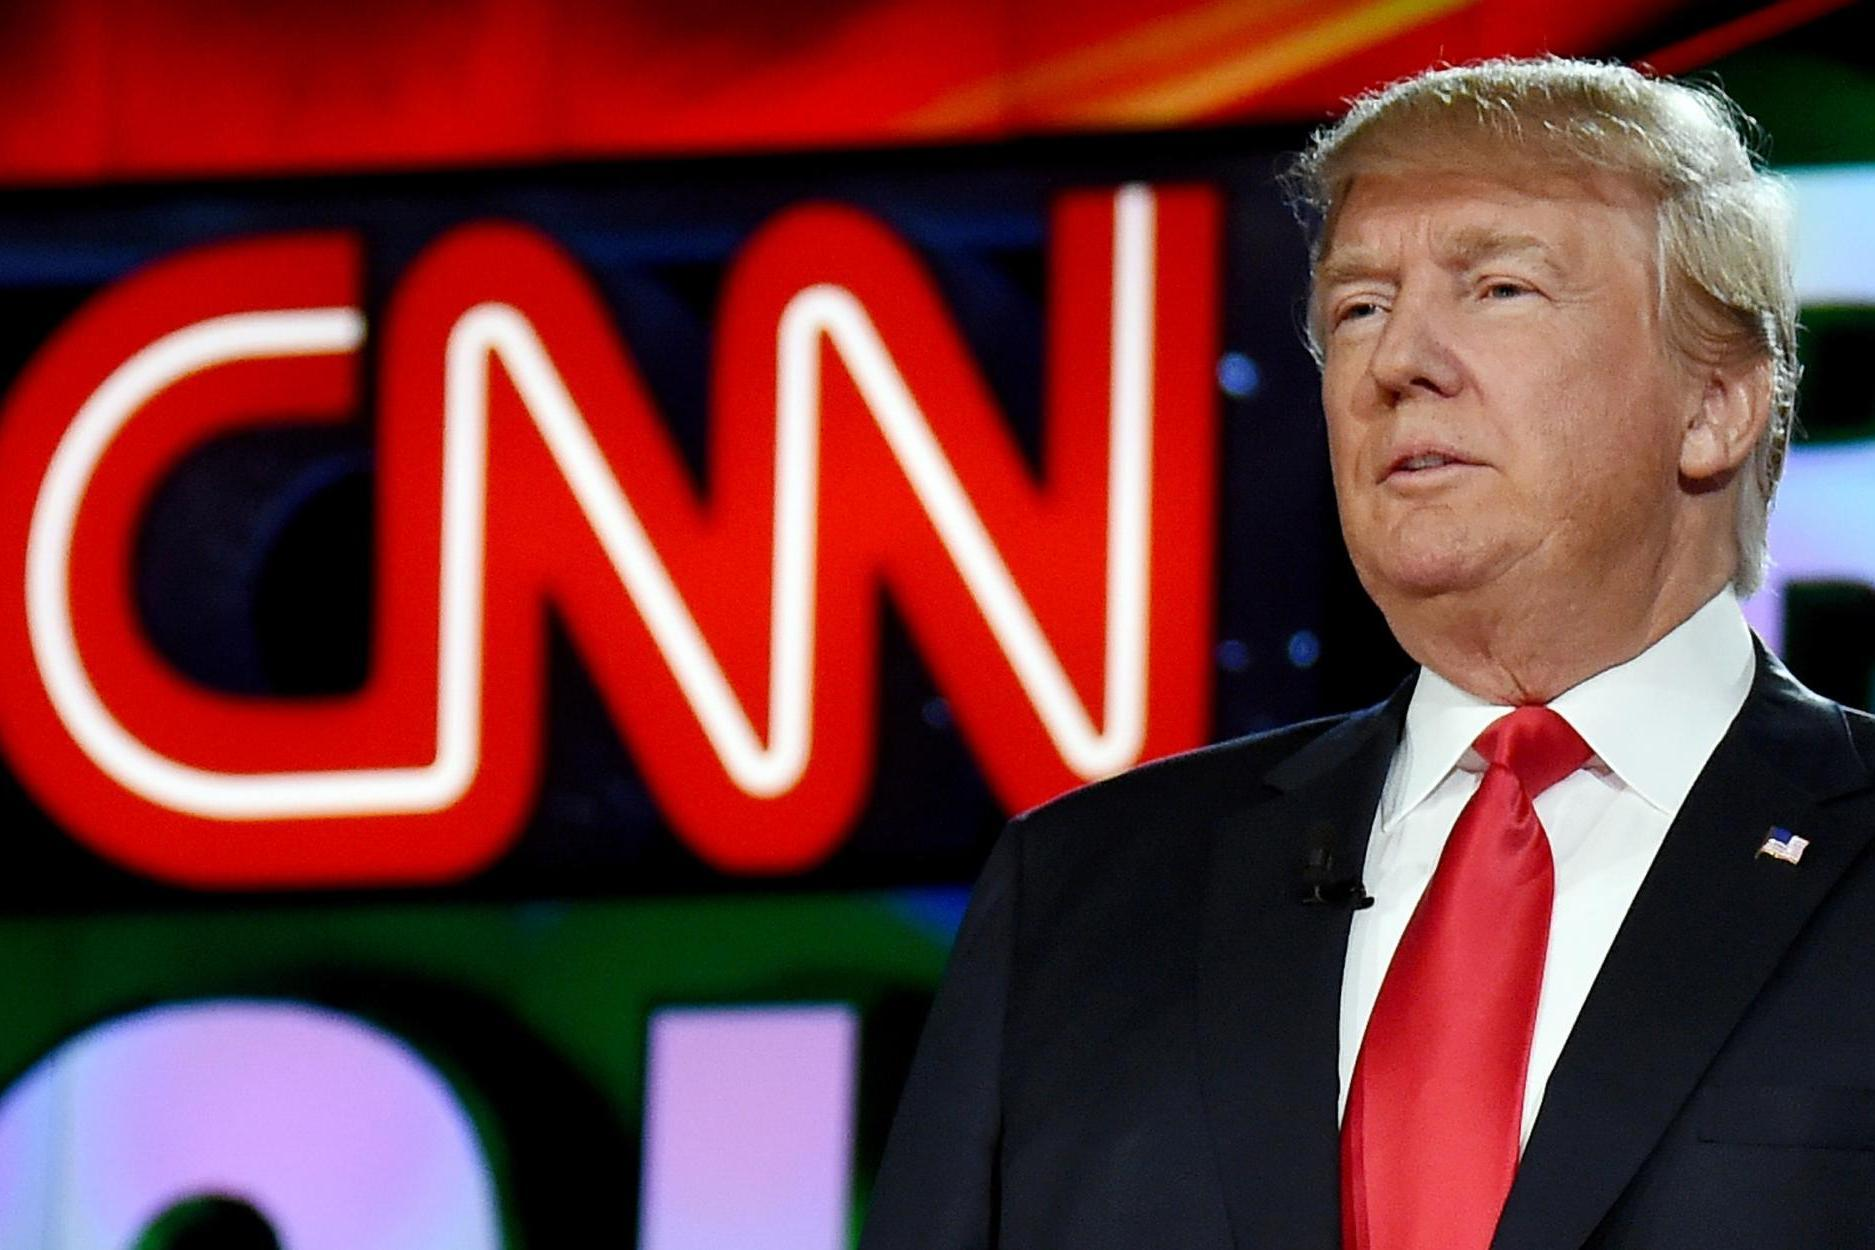 Donald Trump accuses CNN of 'fake news' after three reporters resign over retracted Russia story